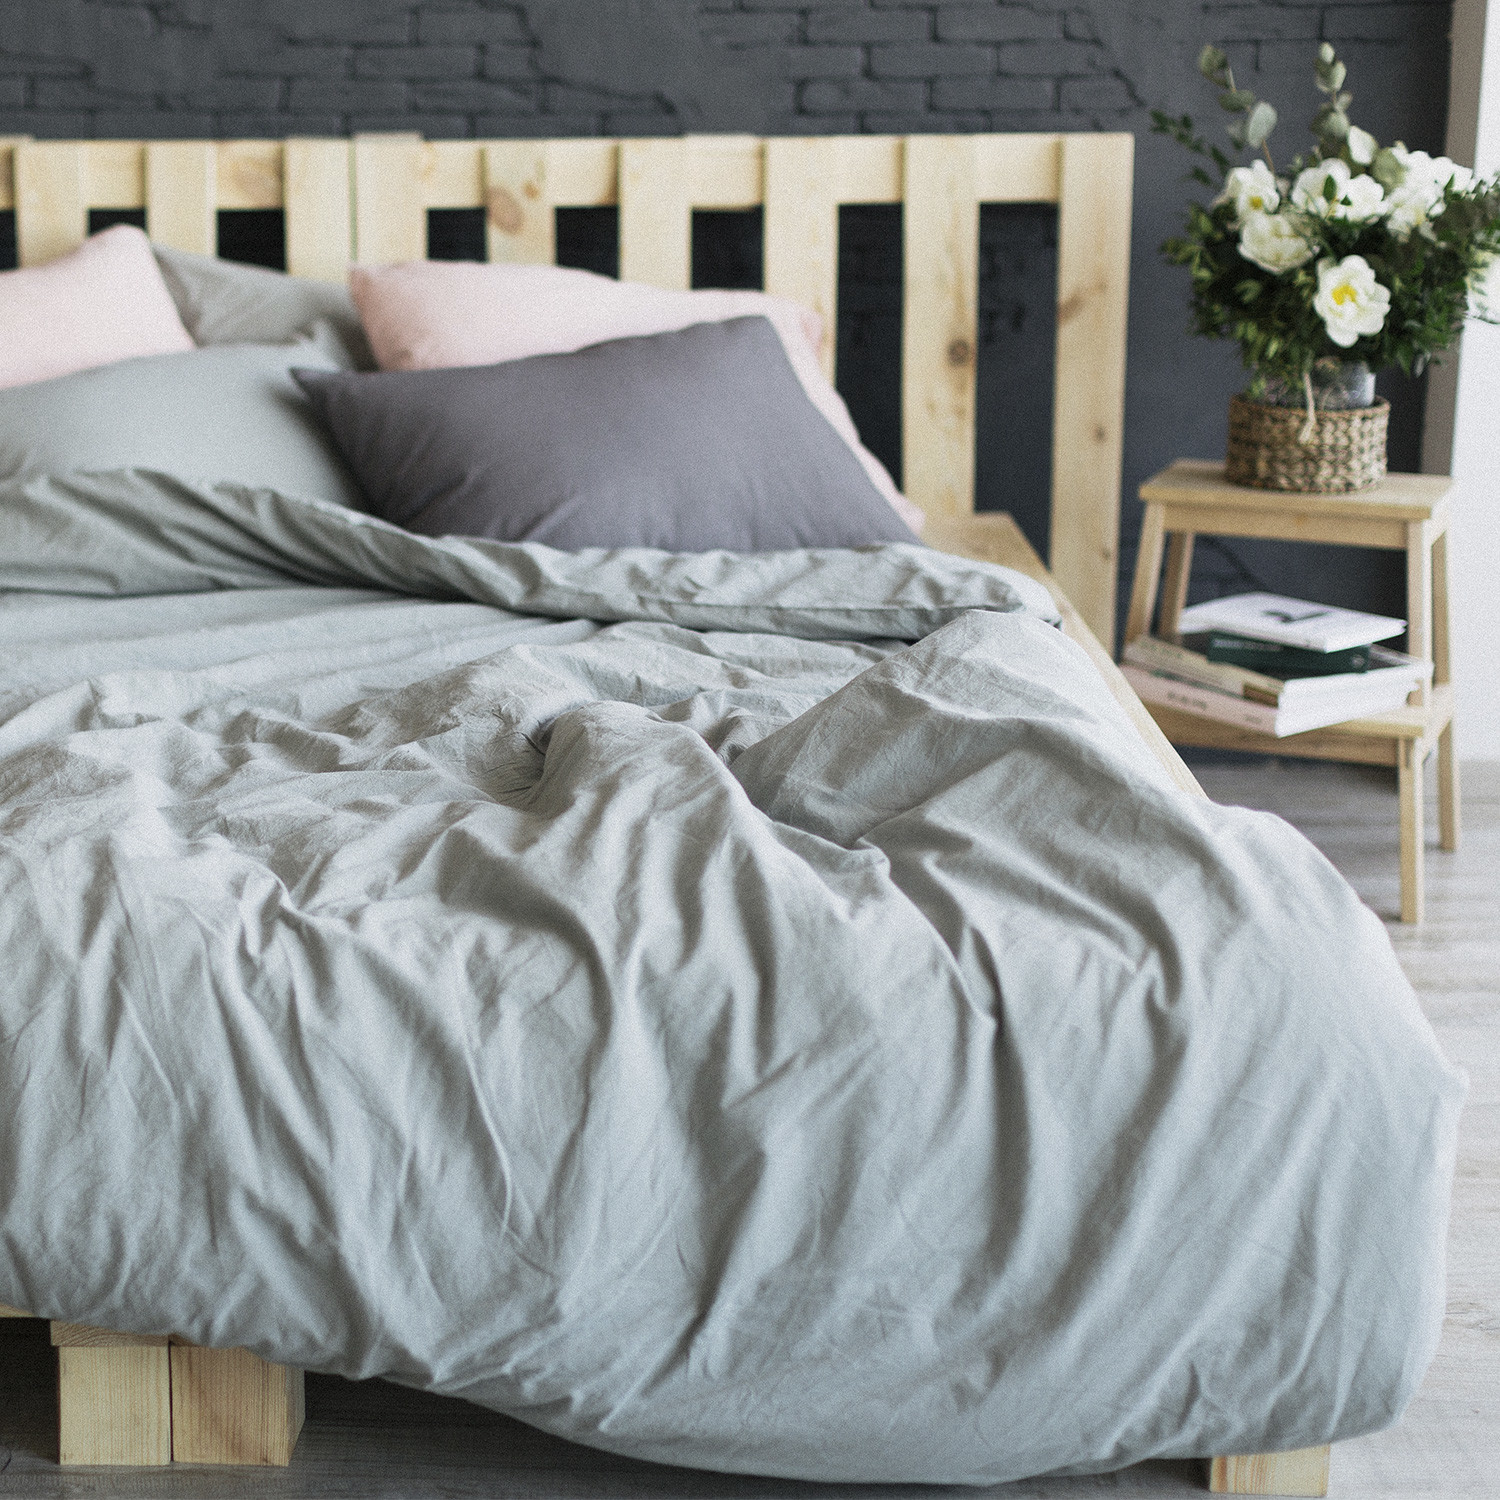 Cotton Bed Linen Sale Organic Washed Cotton Bedding Set Olive Grey Home Me Touch